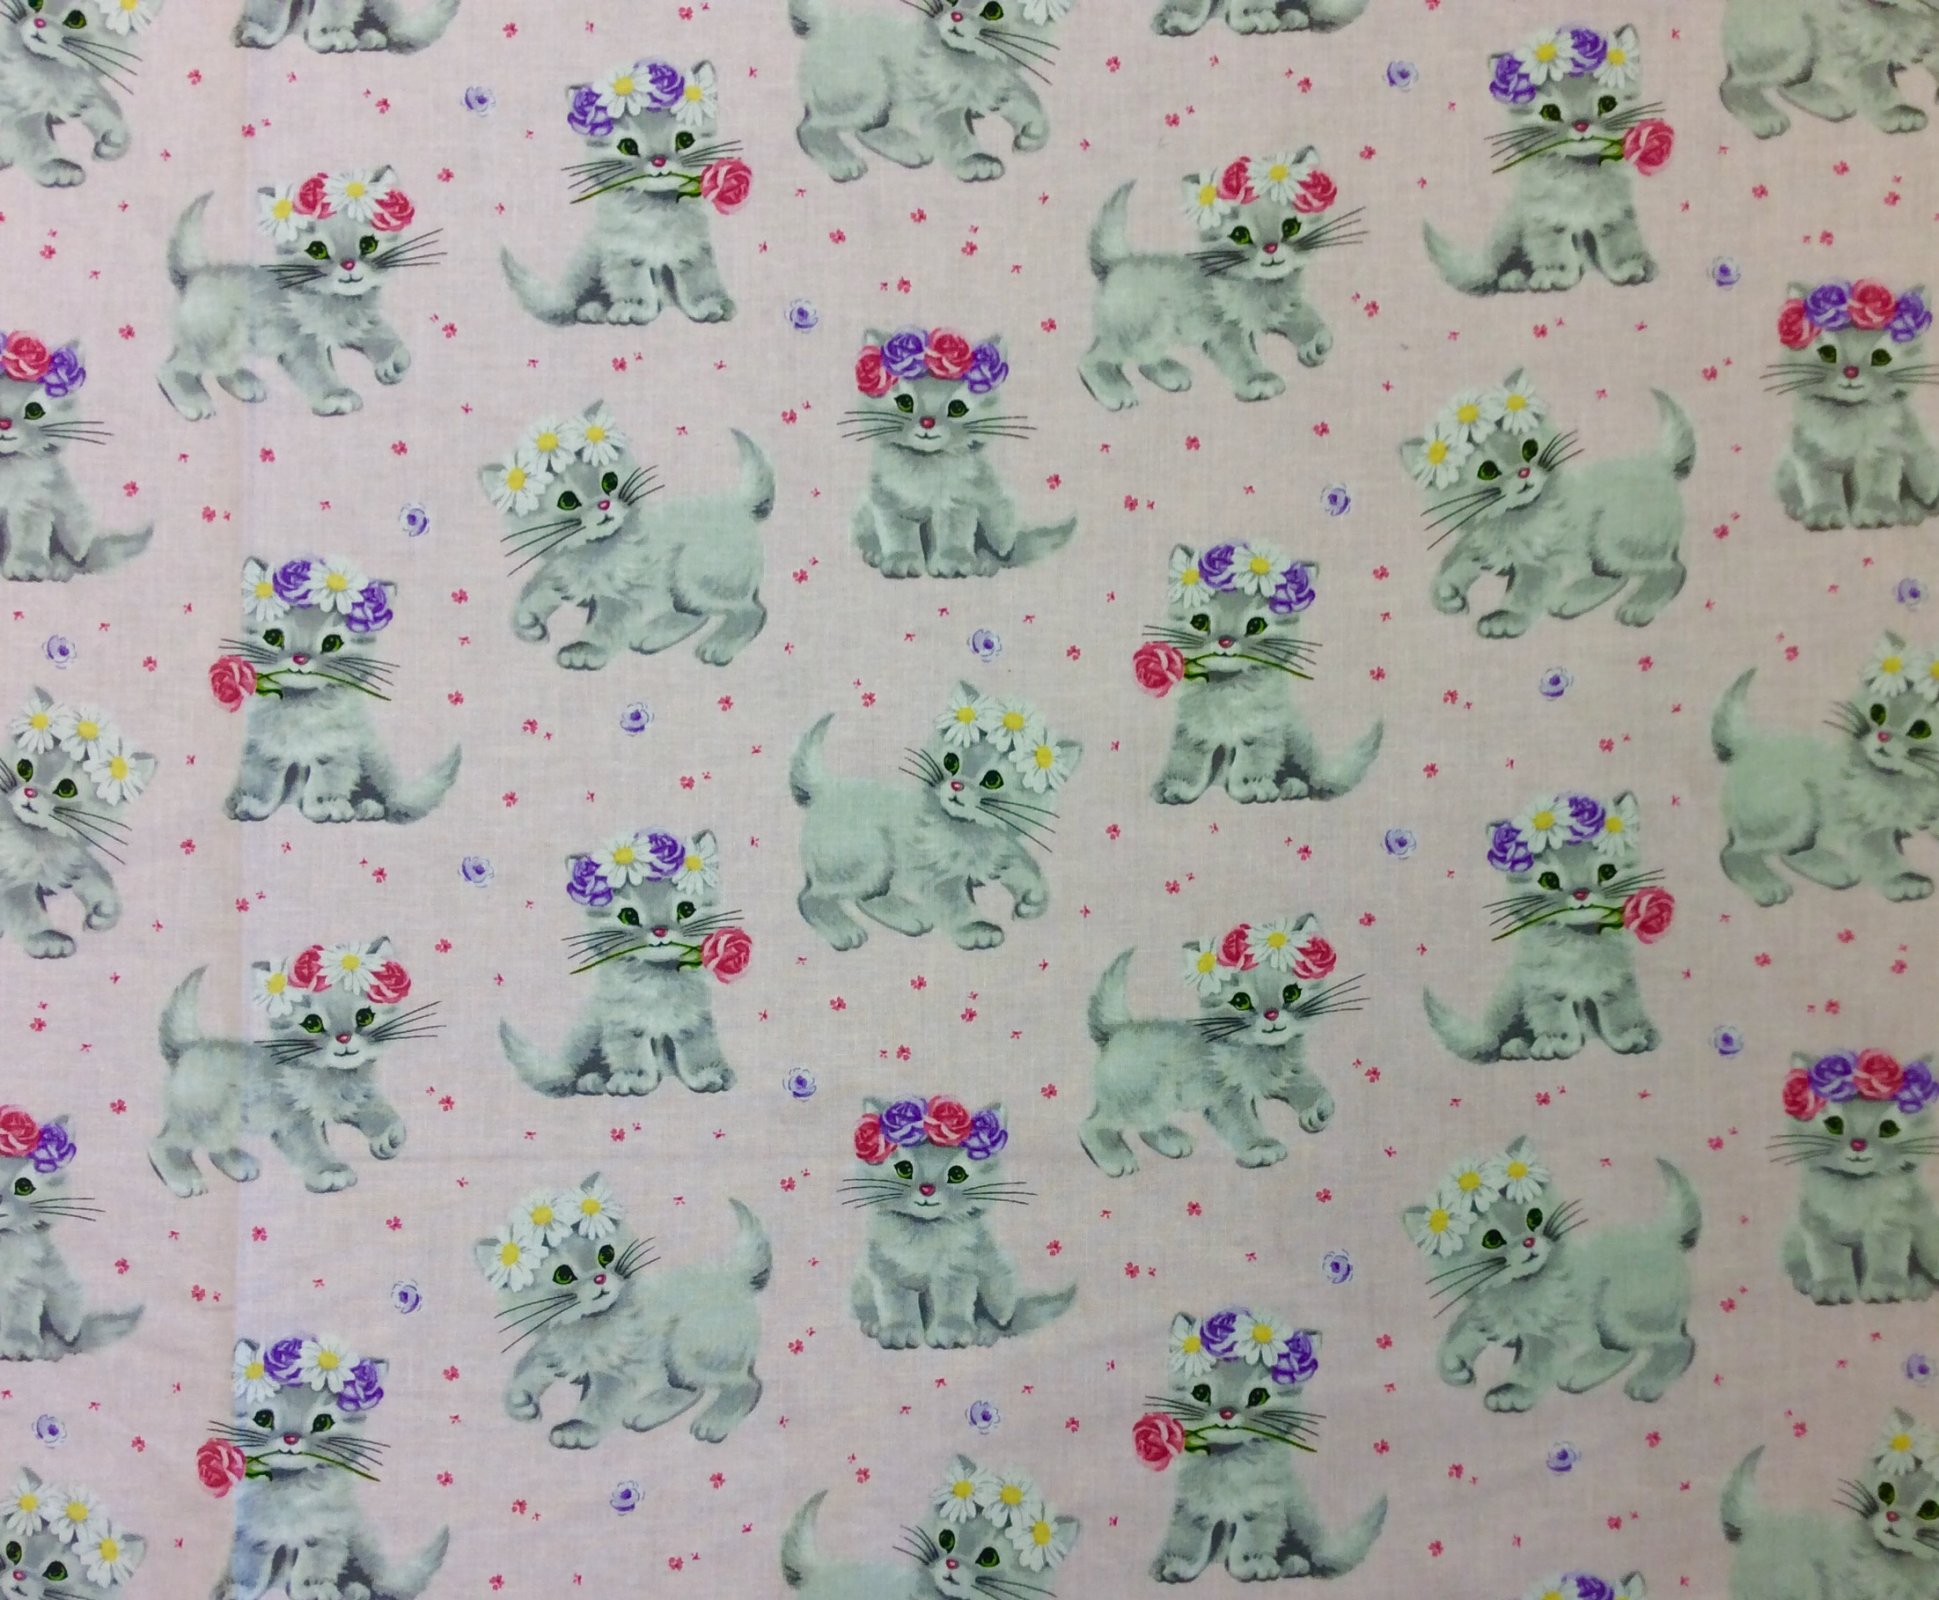 Kitty Cat Kittens Rare Retro Vintage Style Cotton Quilting Fabric MM134